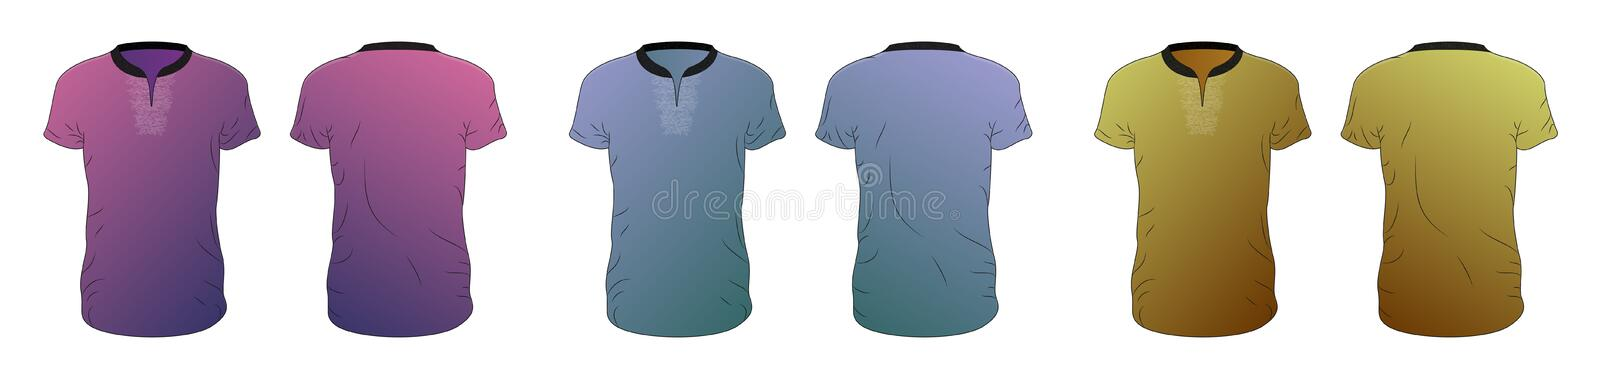 Vector T-shirt templates collection of different colors, vector eps10 illustration royalty free illustration